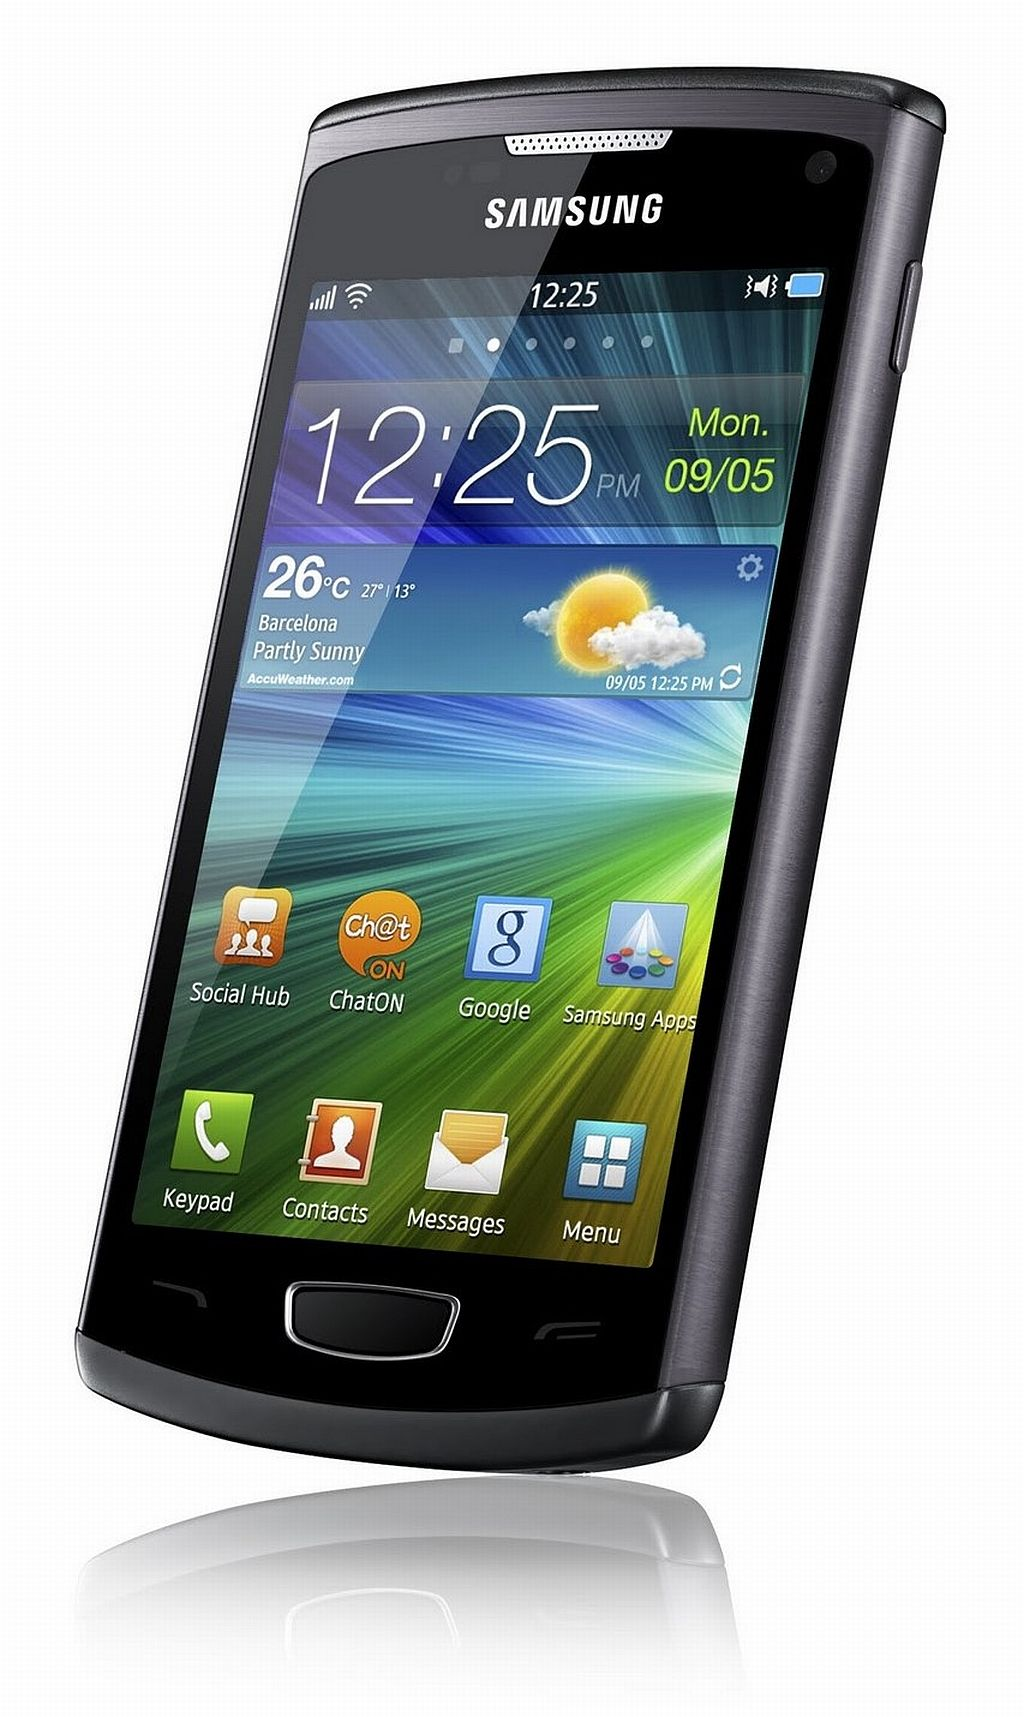 You are here home mobiles devices symbian anna update 25 7 - However For The Explorers Of The Tech World Amongst Us This May Just Be A Very Interesting Journey Read A Detailed Review Of The Samsung Wave Iii Here